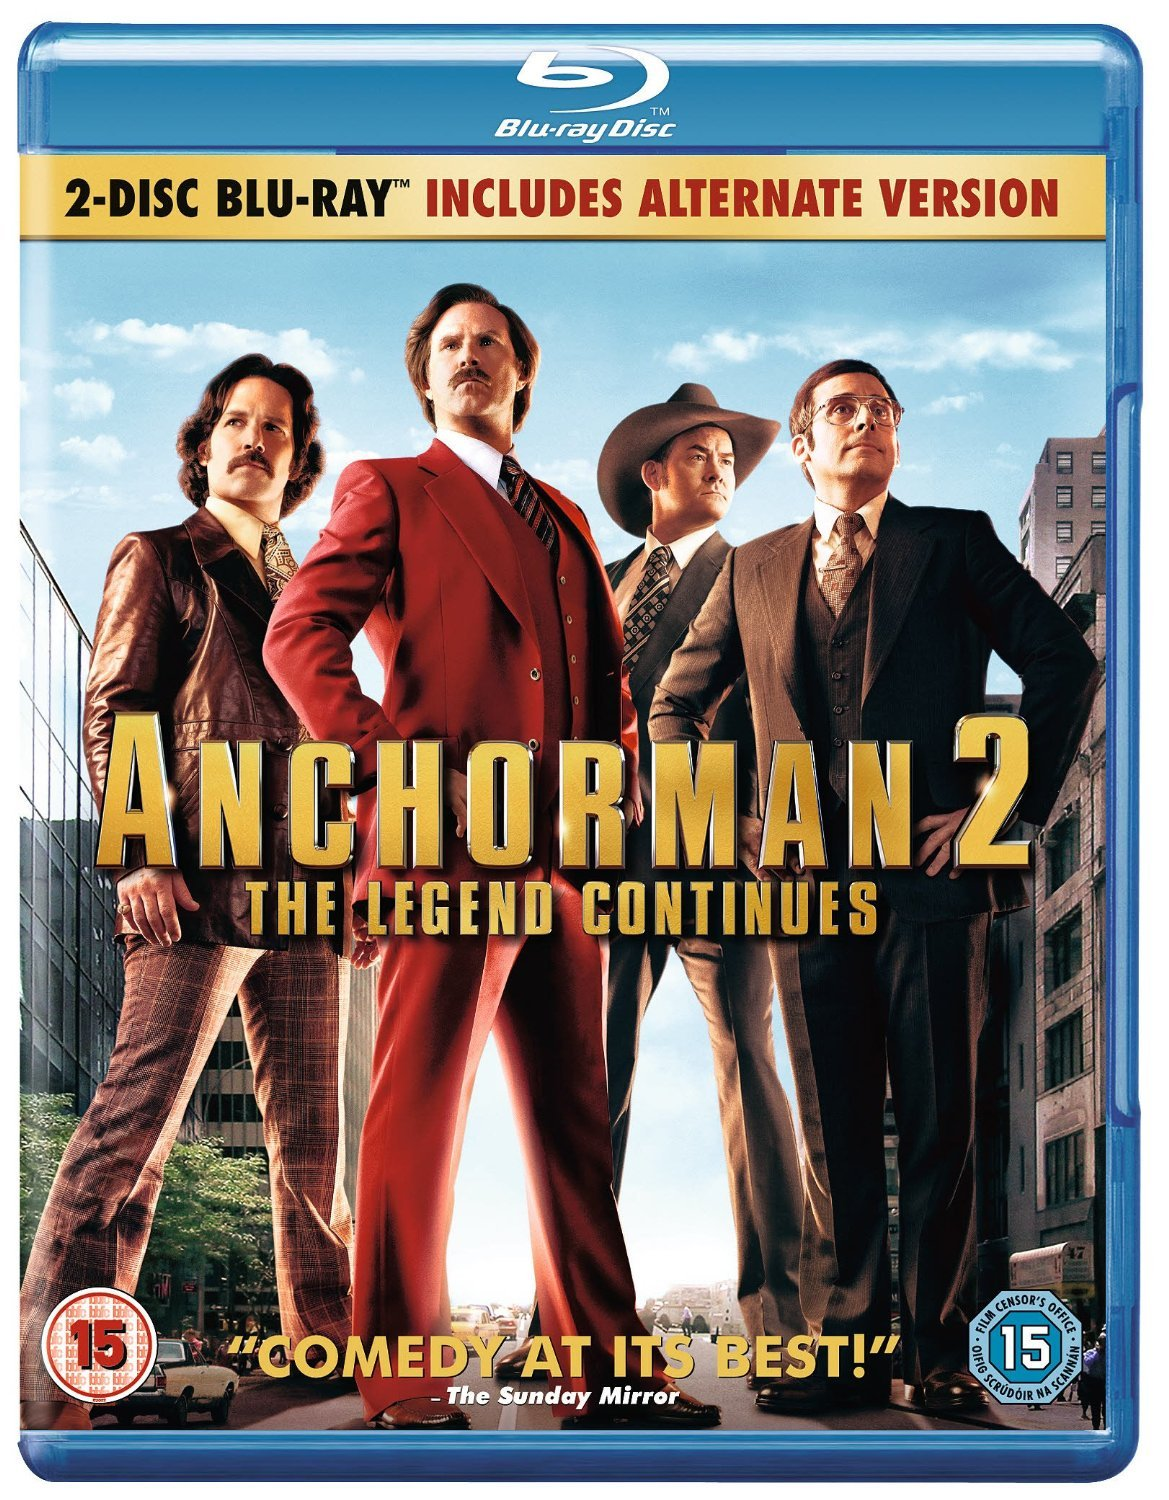 Amazon.com: Anchorman 2: The Legend Continues [Blu-ray] [2013 ...